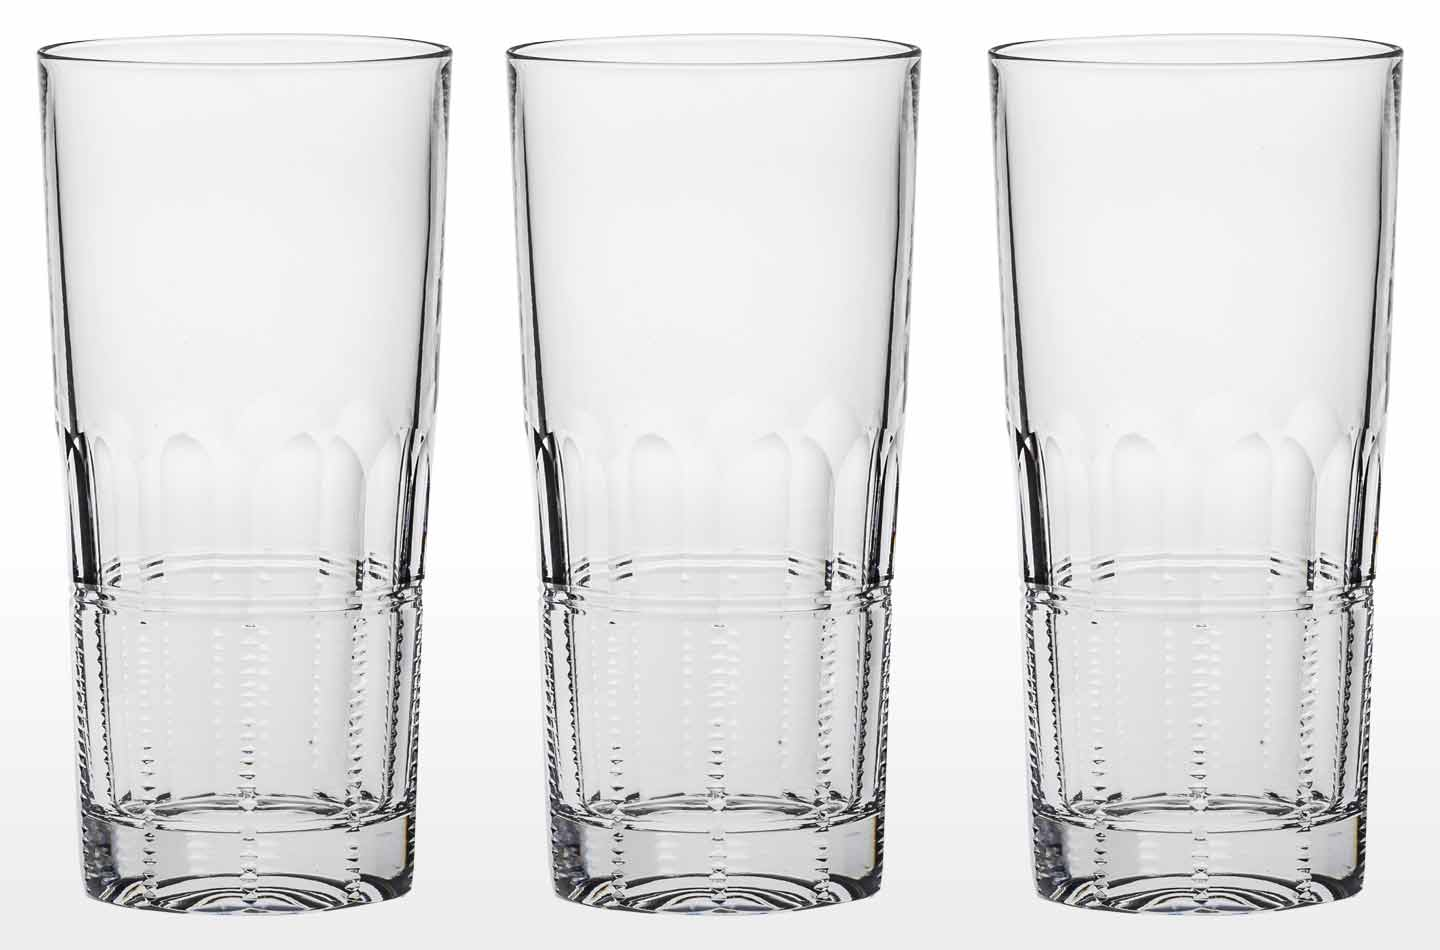 Fine Crystal Tall Tumblers and Highballs